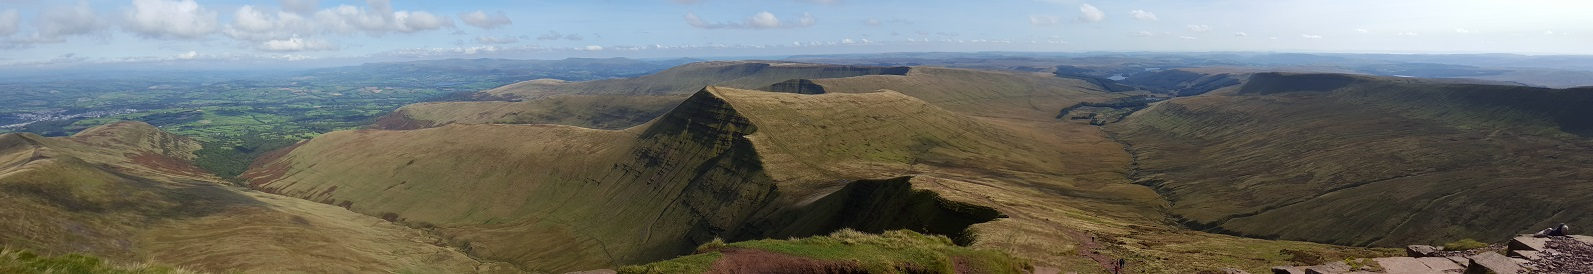 Brecon Beacons - Abergavenny to Brecon feature image